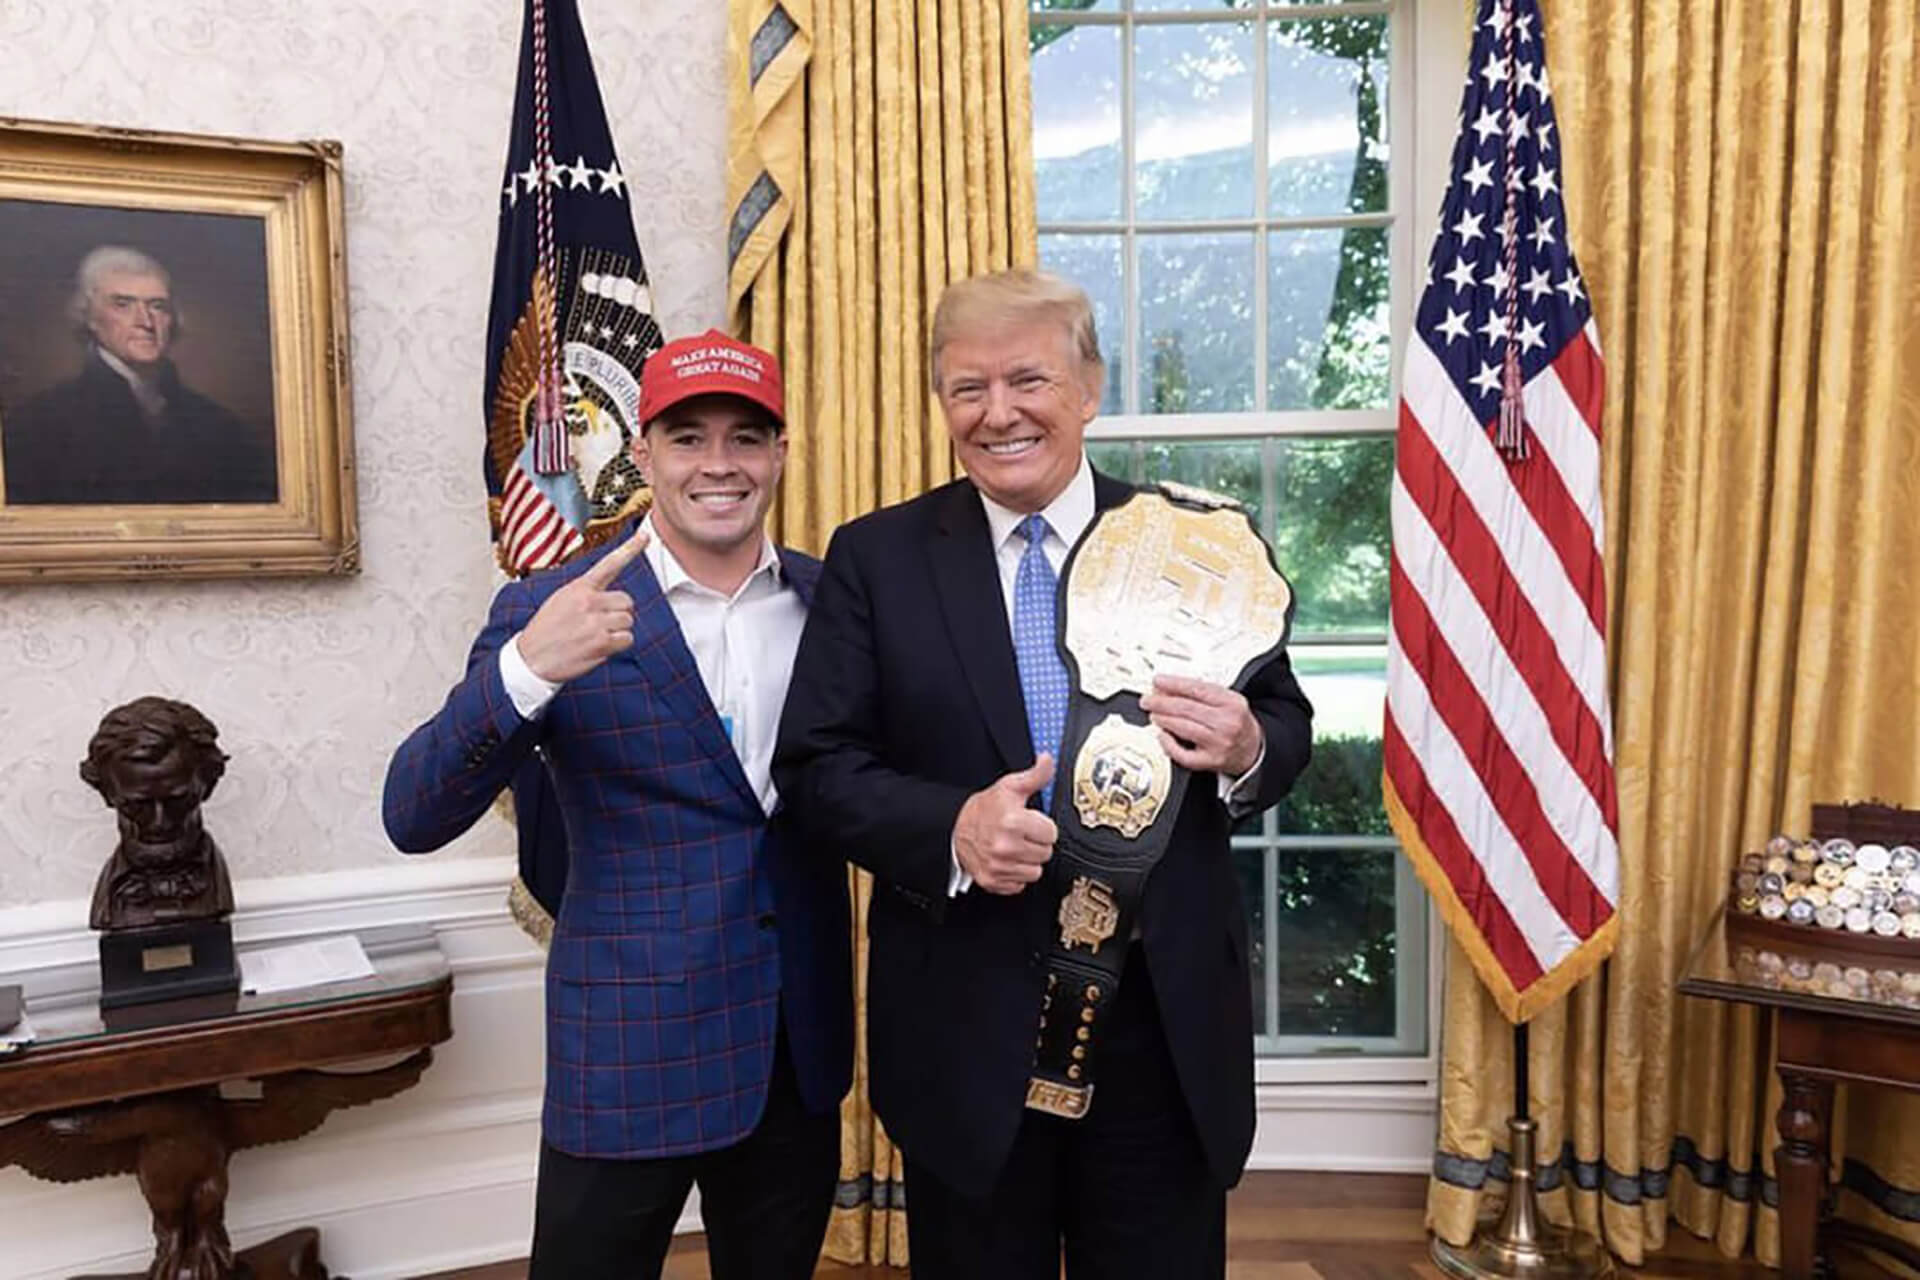 Colby Covington fighter Trump